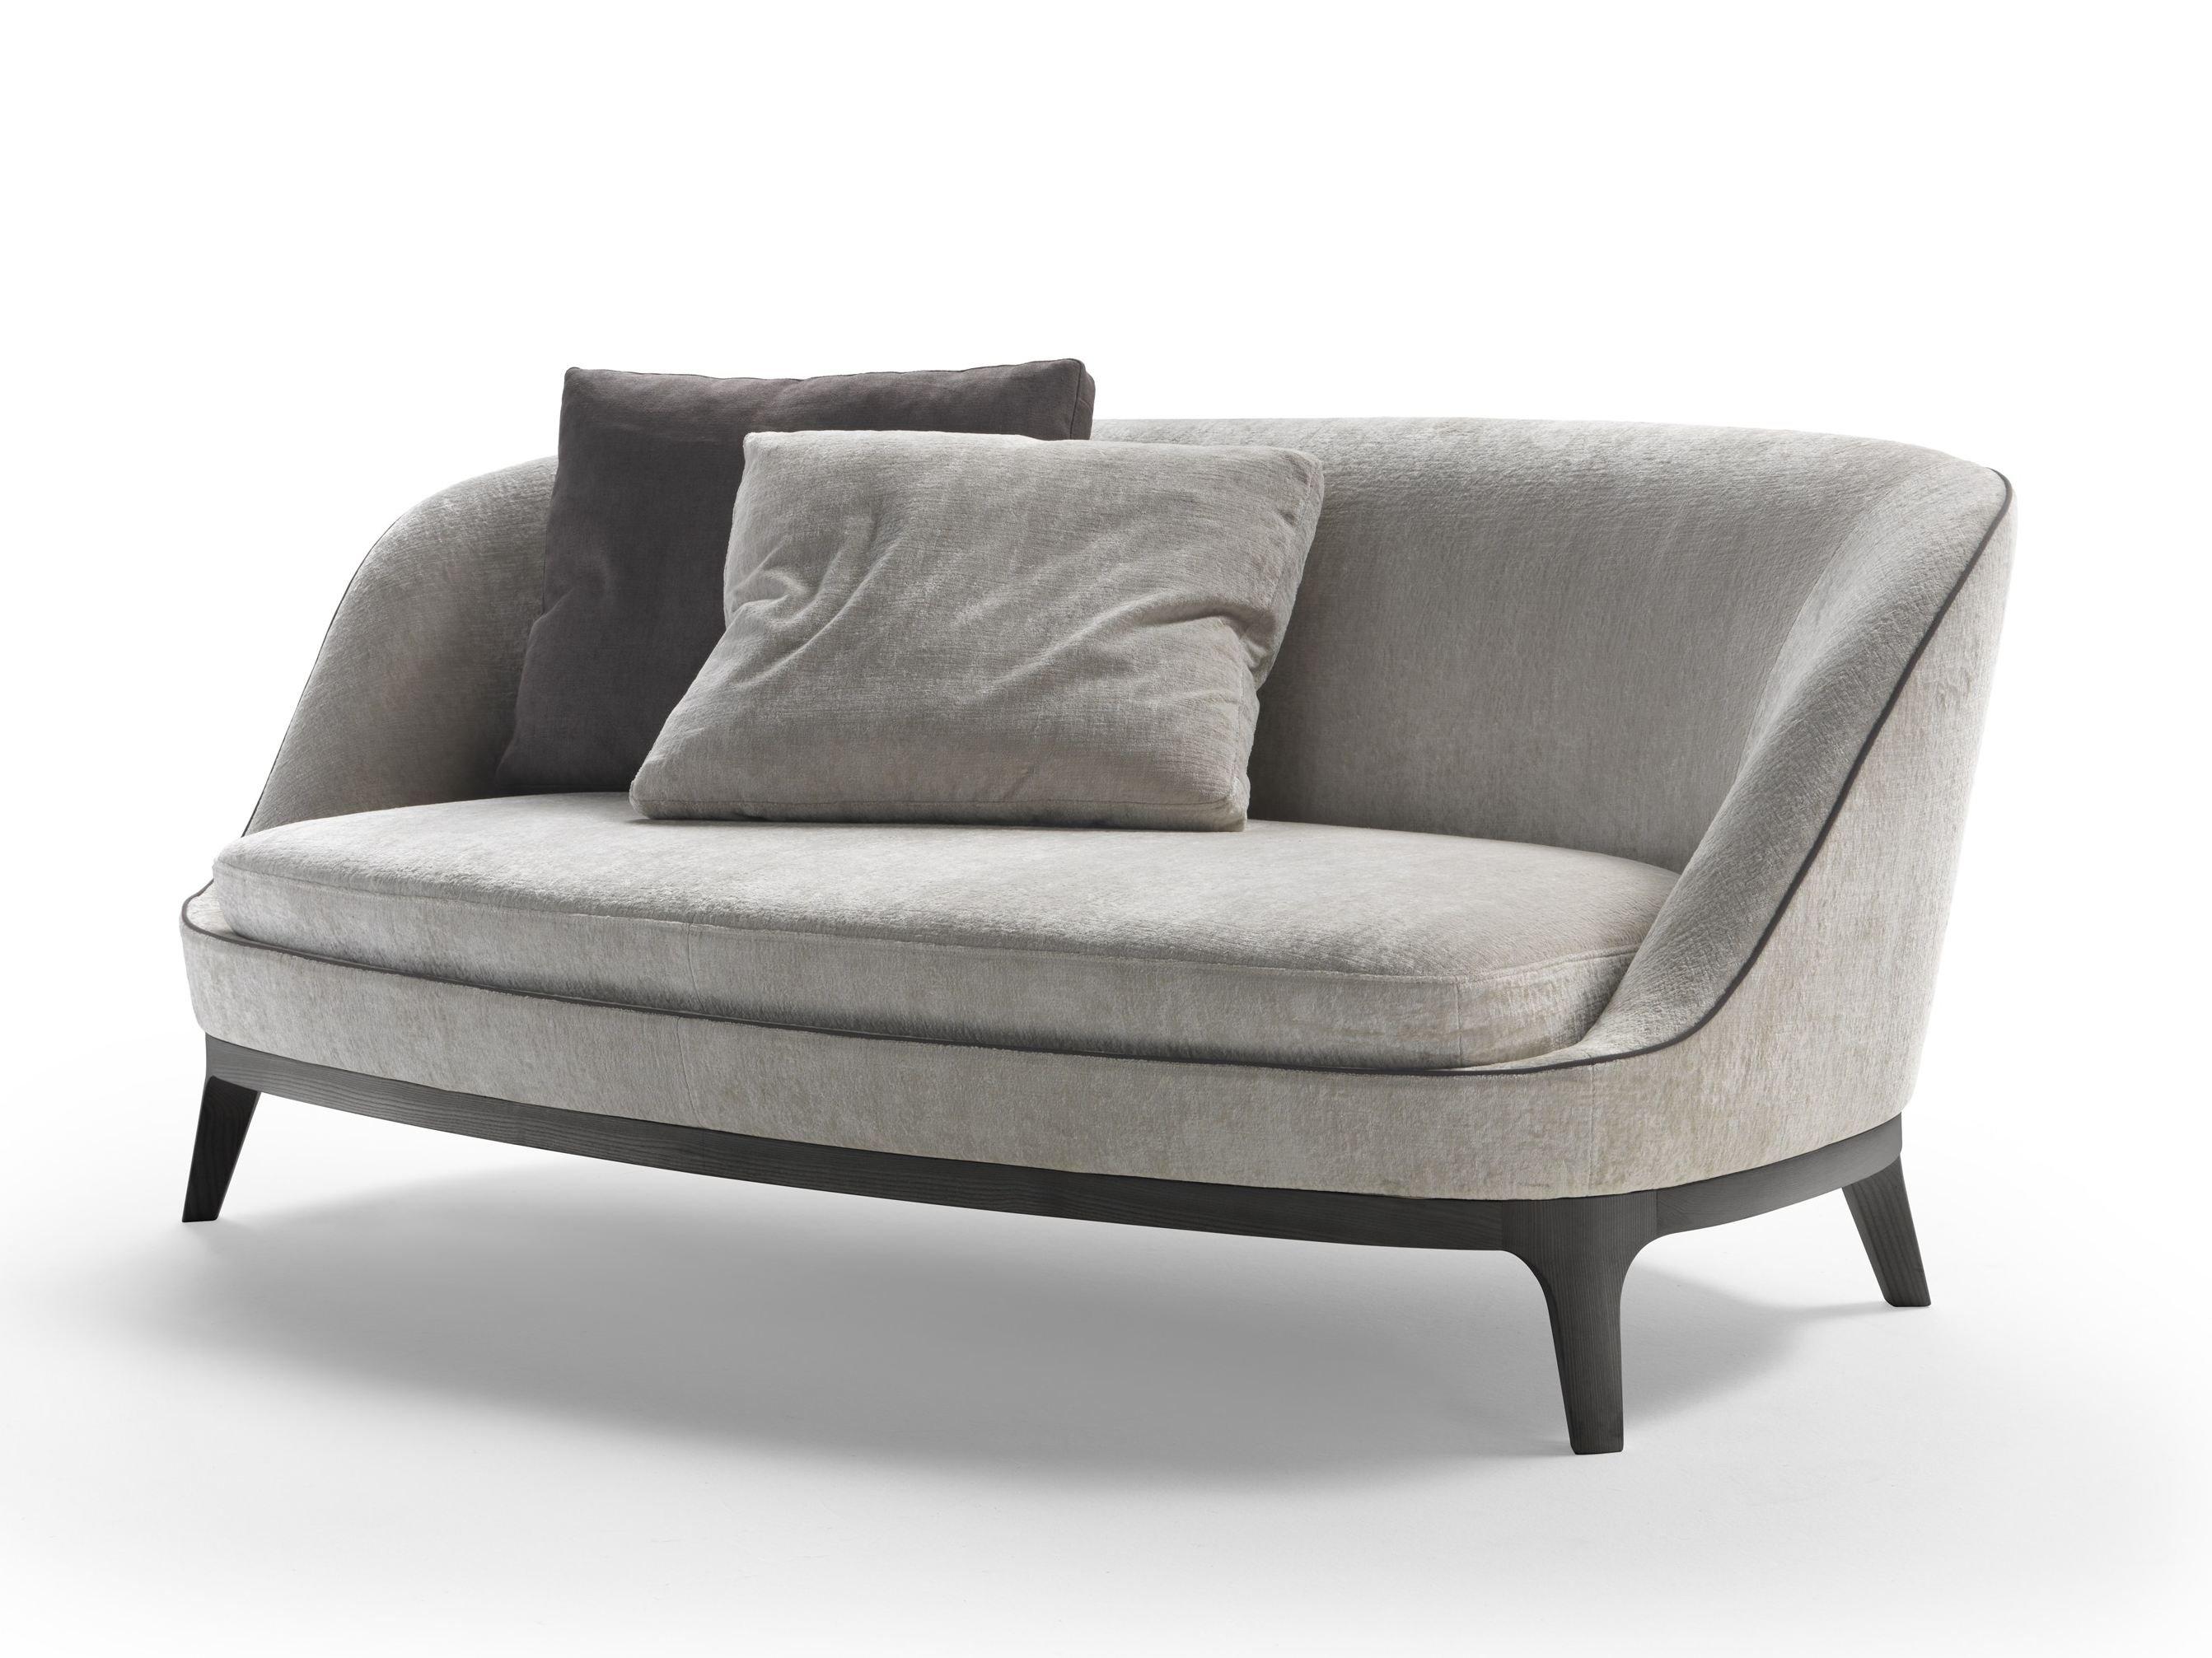 Dragonfly Small Sofa By Mood By Flexform Design Roberto